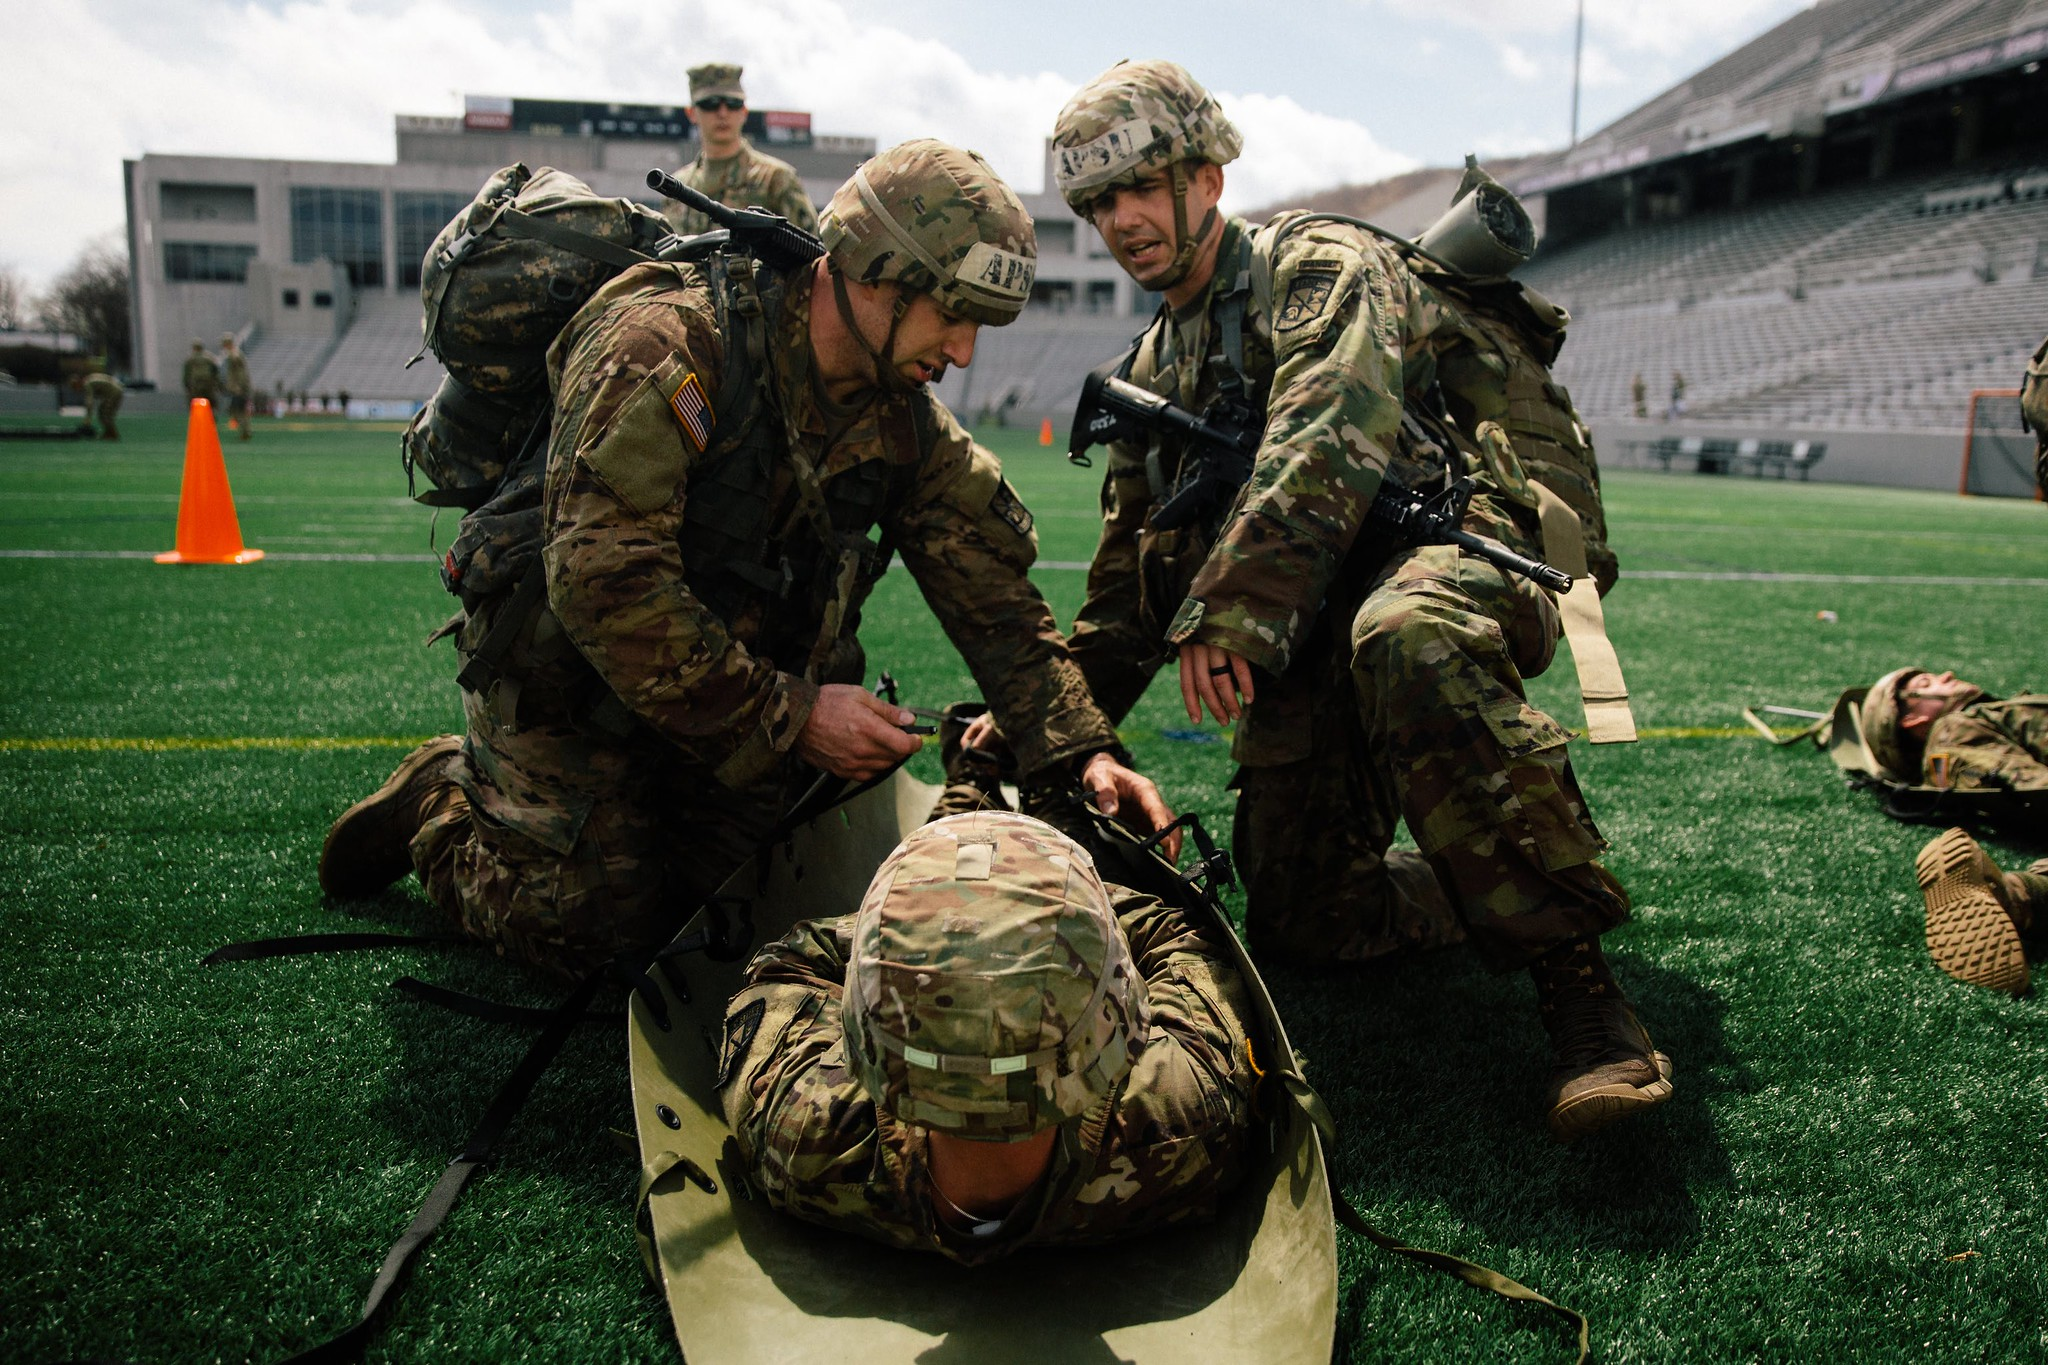 Ranger Challenge team finishes eighth among ROTC teams at Sandhurst